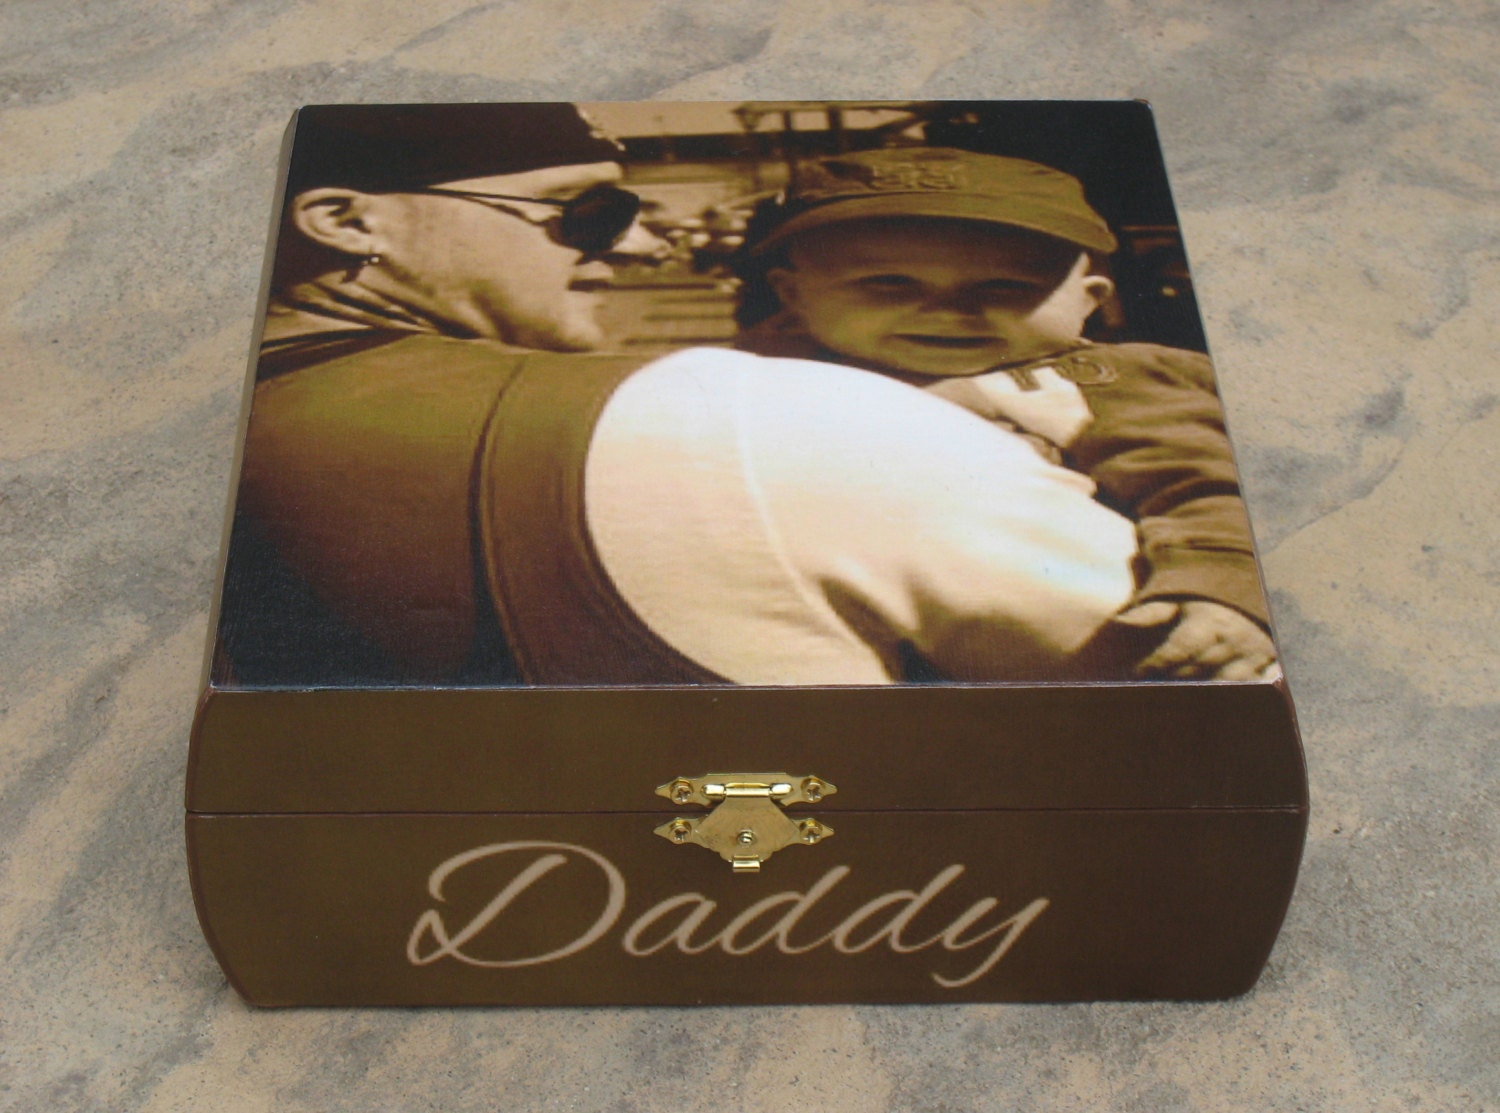 Personalized Photo Keepsake Box By Designsbypicturethis On